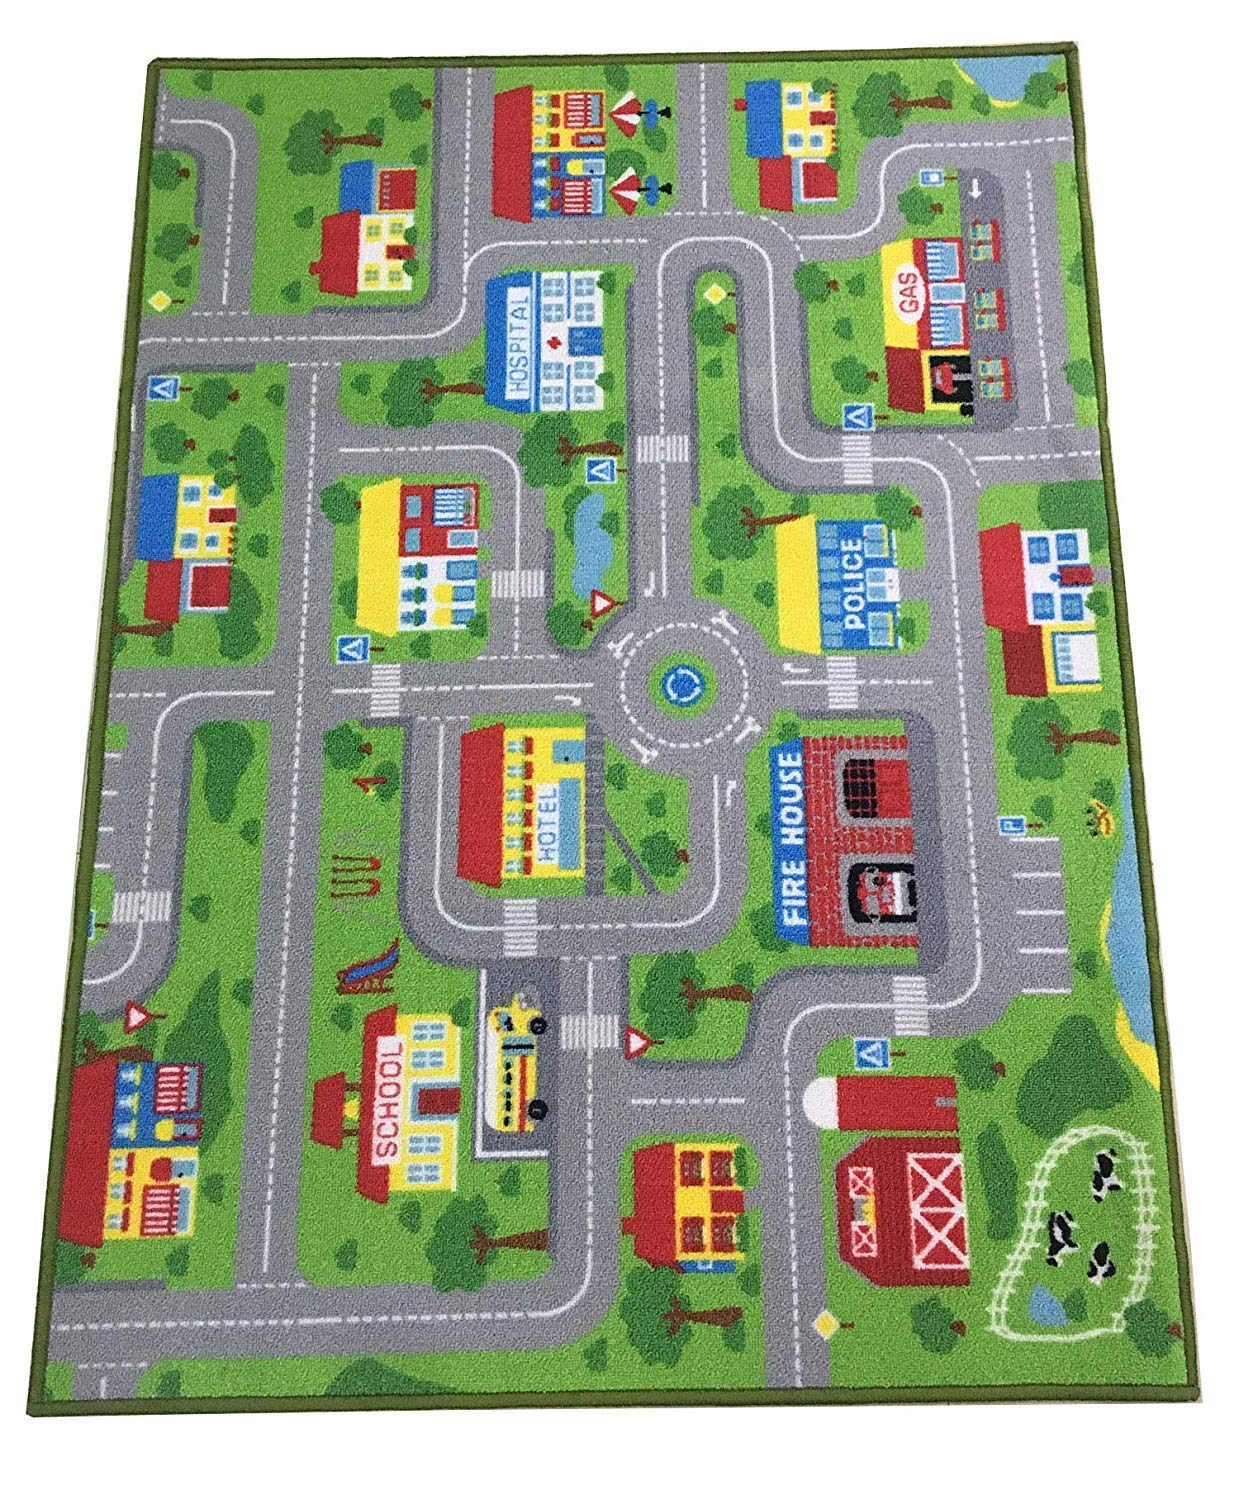 City Street Map Kids' Rug with Roads Kids Rug Play mat with School Hospital Station Bank Hotel Book Store Government Workshop Farm for Boy Girl Nursery Bedroom Playroom Classrooms (51'' X 75'')